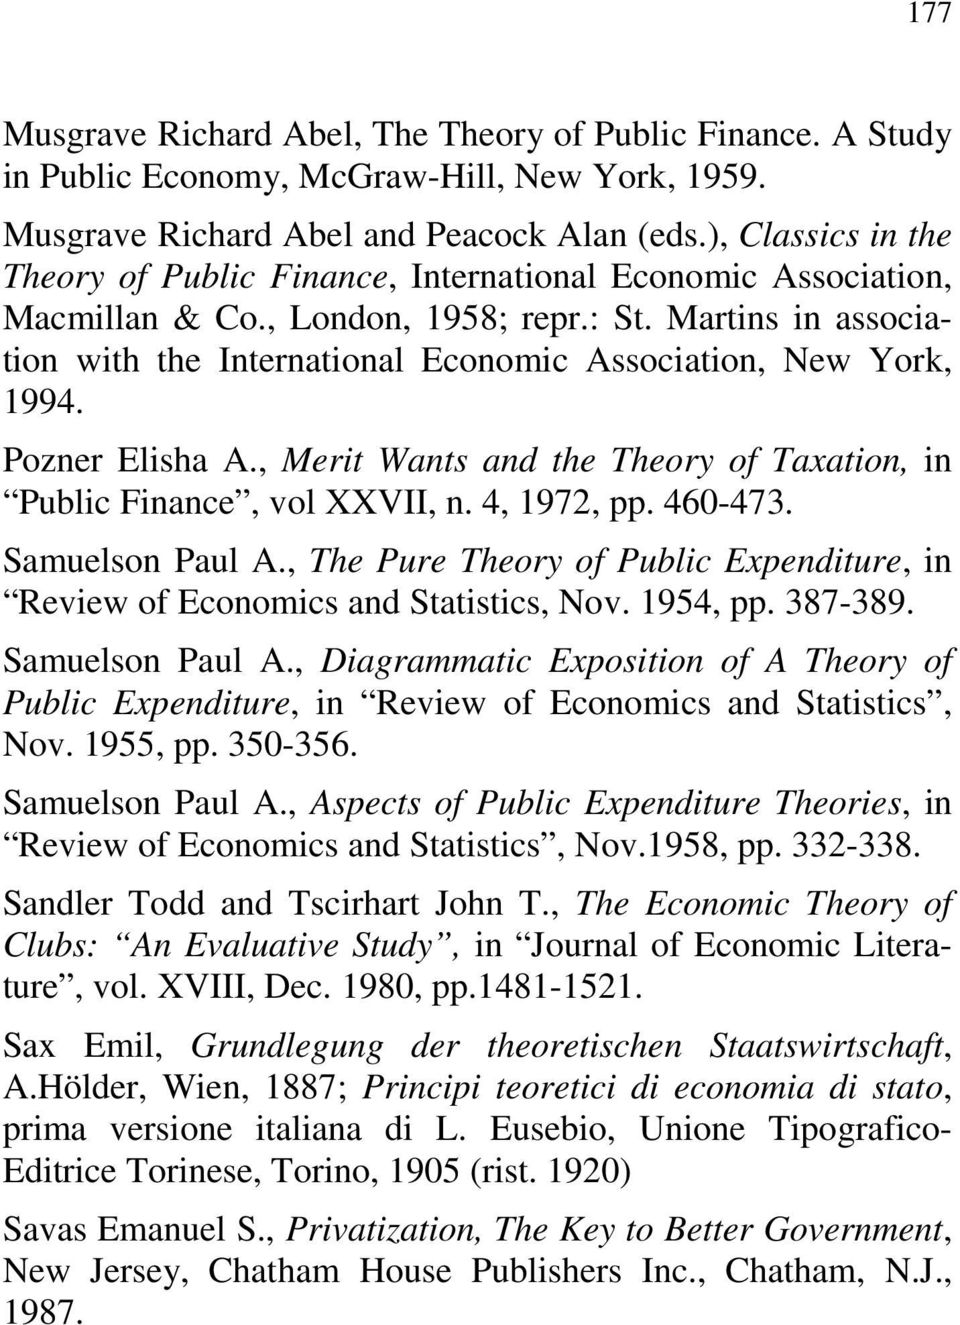 Martins in association with the International Economic Association, New York, 1994. Pozner Elisha A., Merit Wants and the Theory of Taxation, in Public Finance, vol XXVII, n. 4, 1972, pp. 460-473.